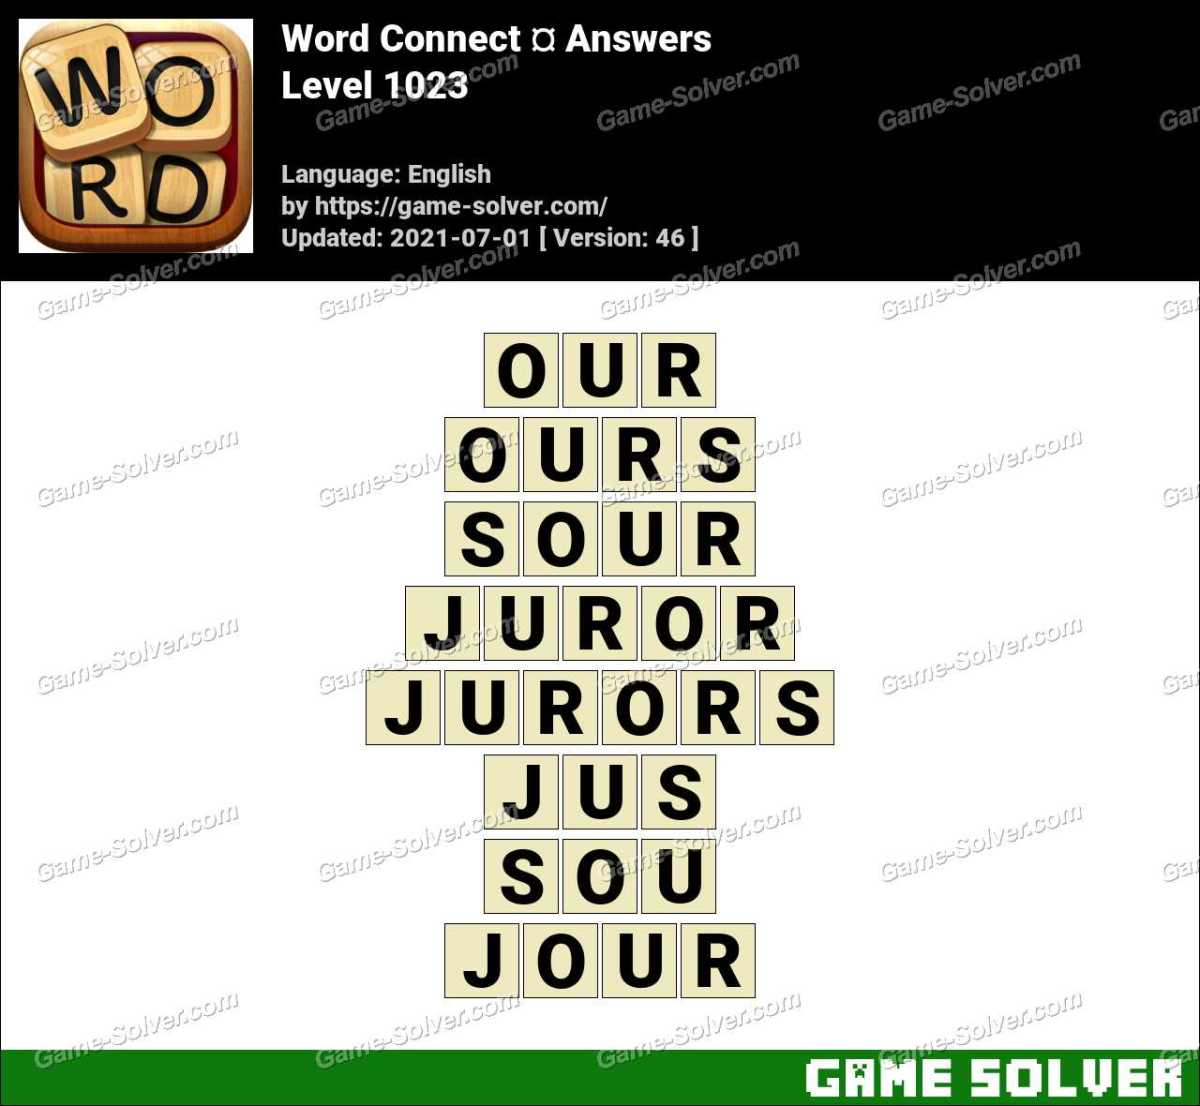 Word Connect Level 1023 Answers